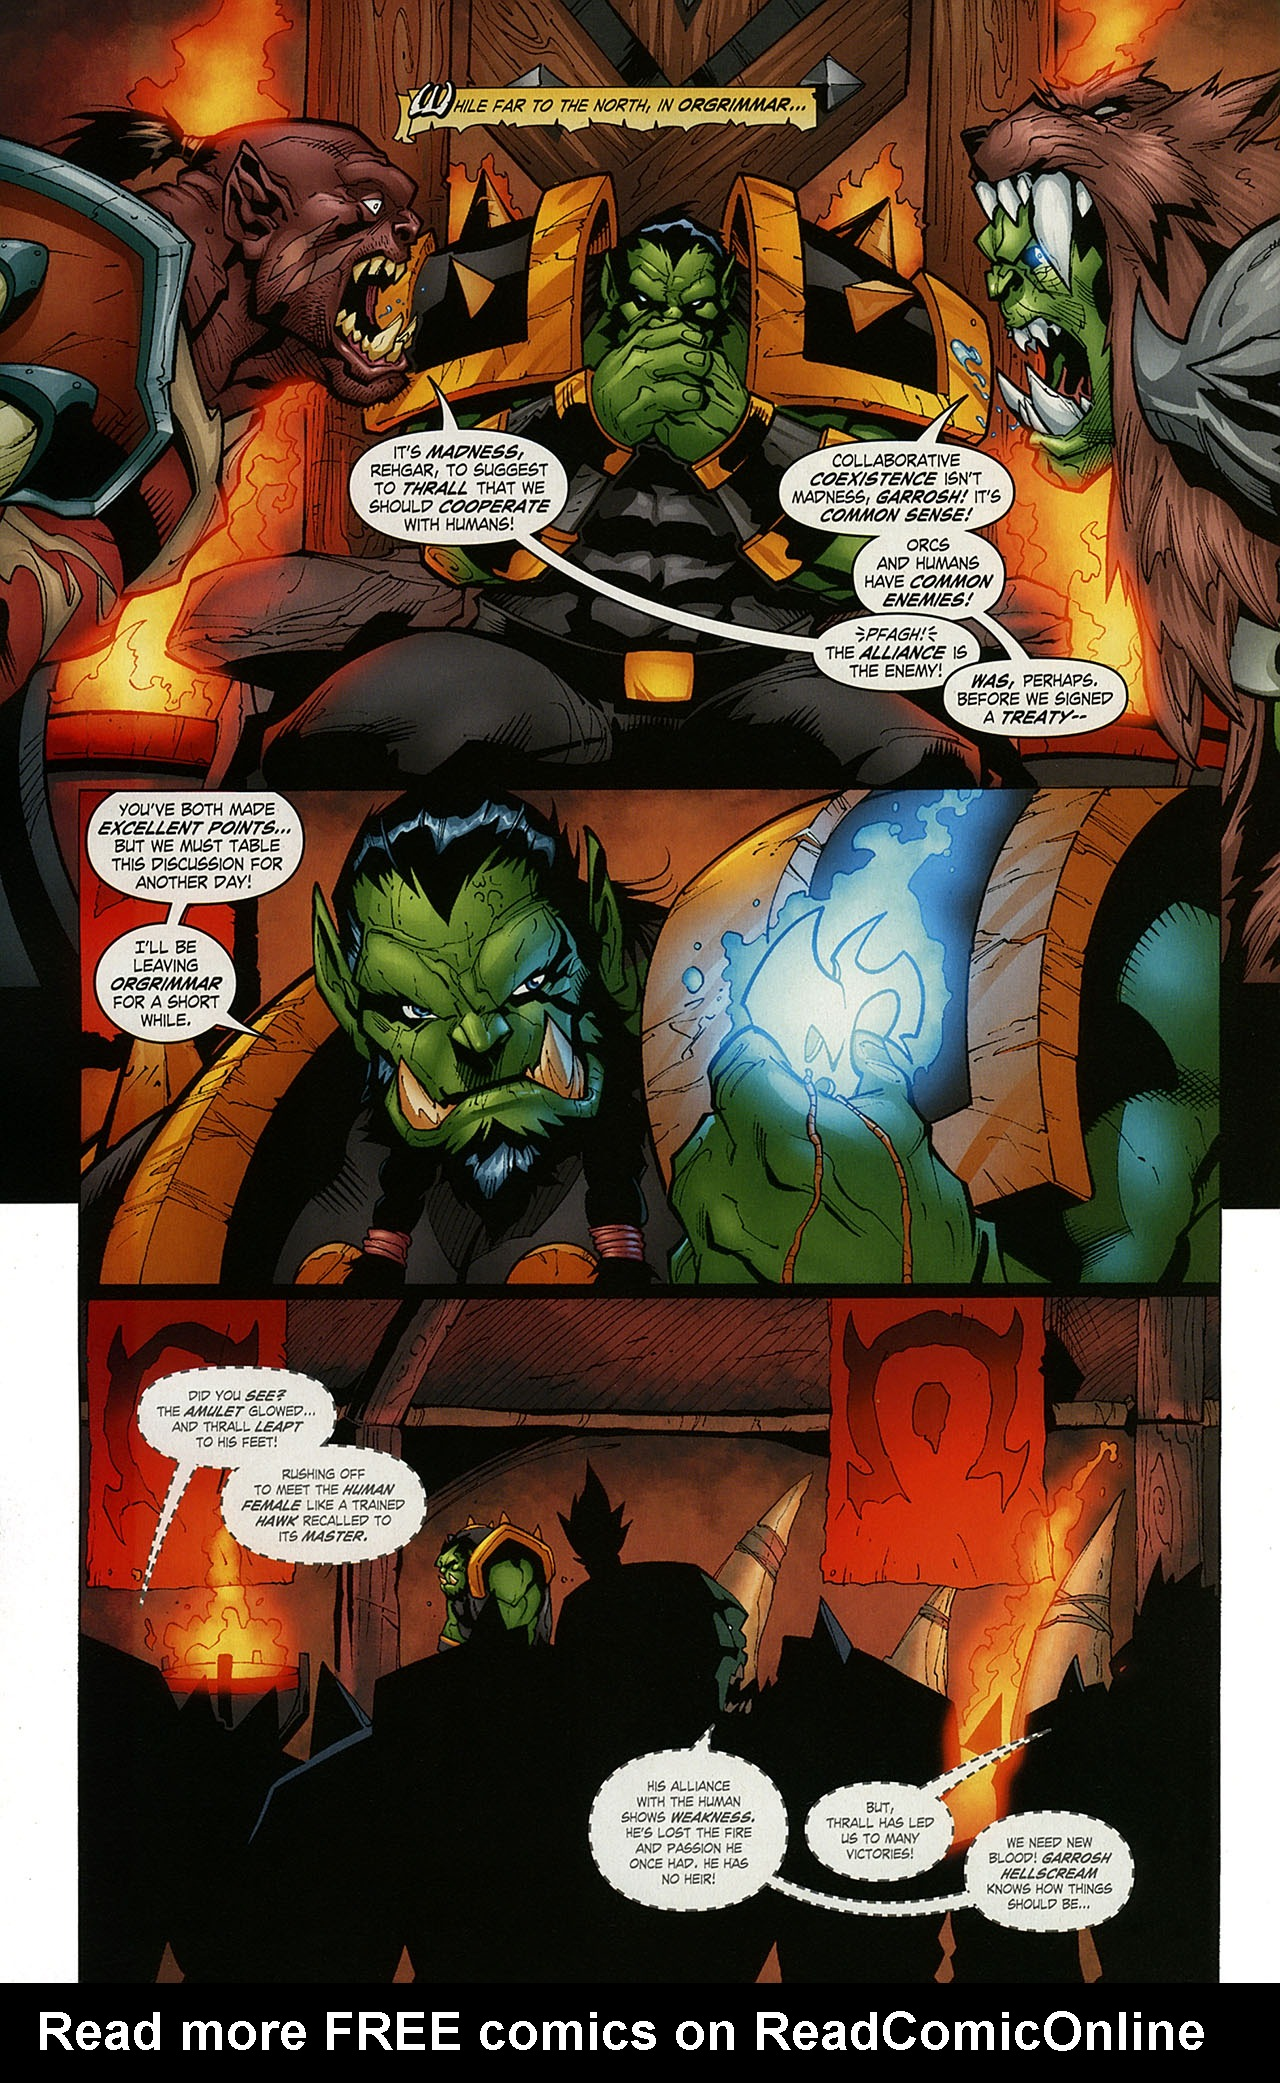 Read online World of Warcraft comic -  Issue #15 - 18